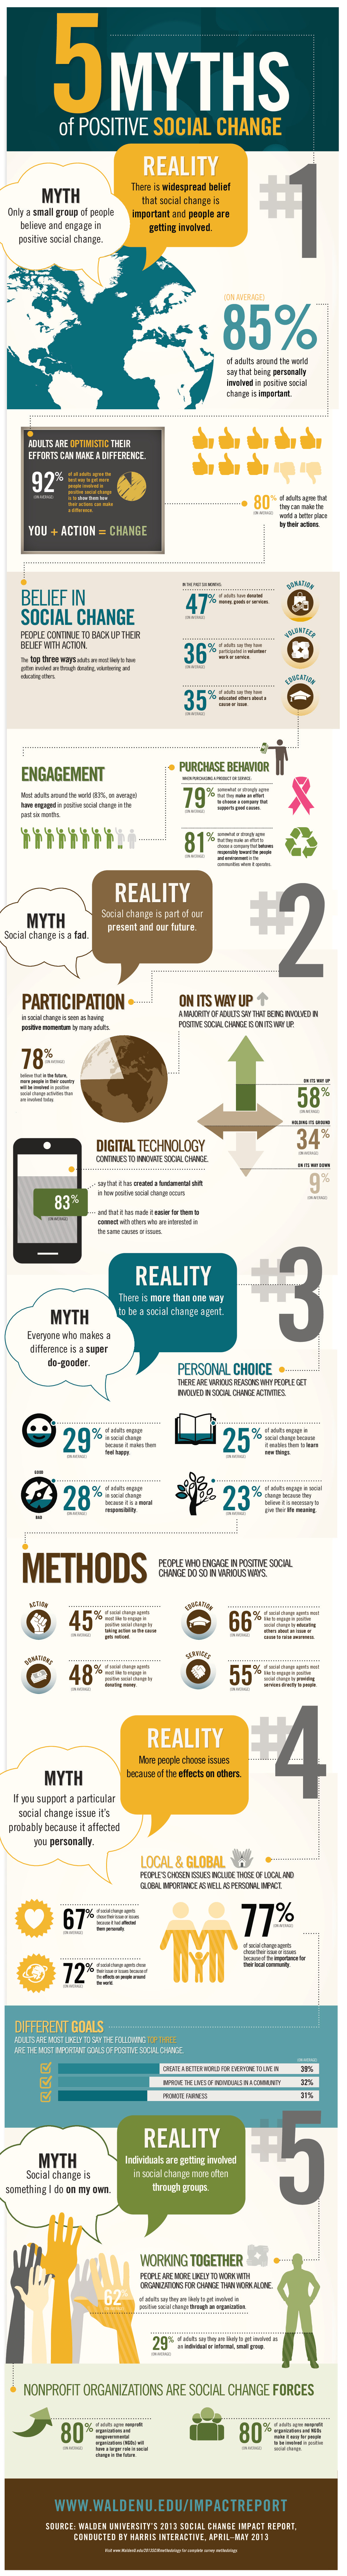 Infographic: 5 Myths Of Positive Social Change